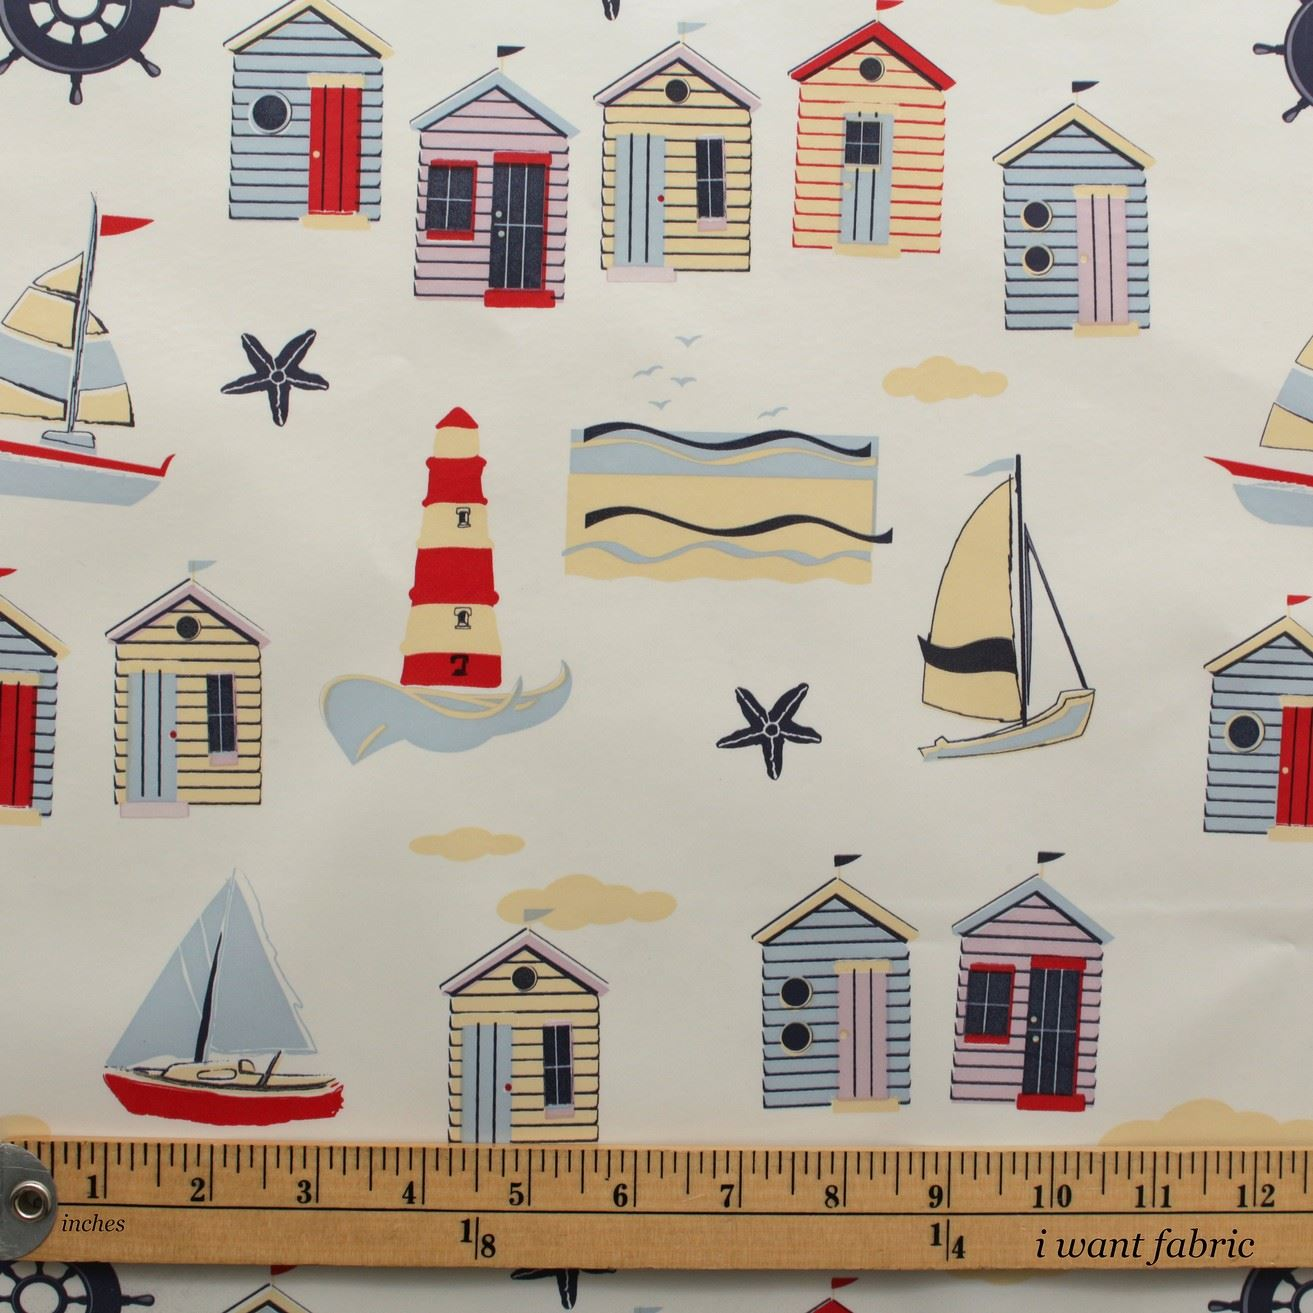 VINTAGE-BEACH-HUTS-SEASIDE-BOATS-WIPE-CLEAN-PVC-OILCLOTH-TABLECLOTH-PER-METRE